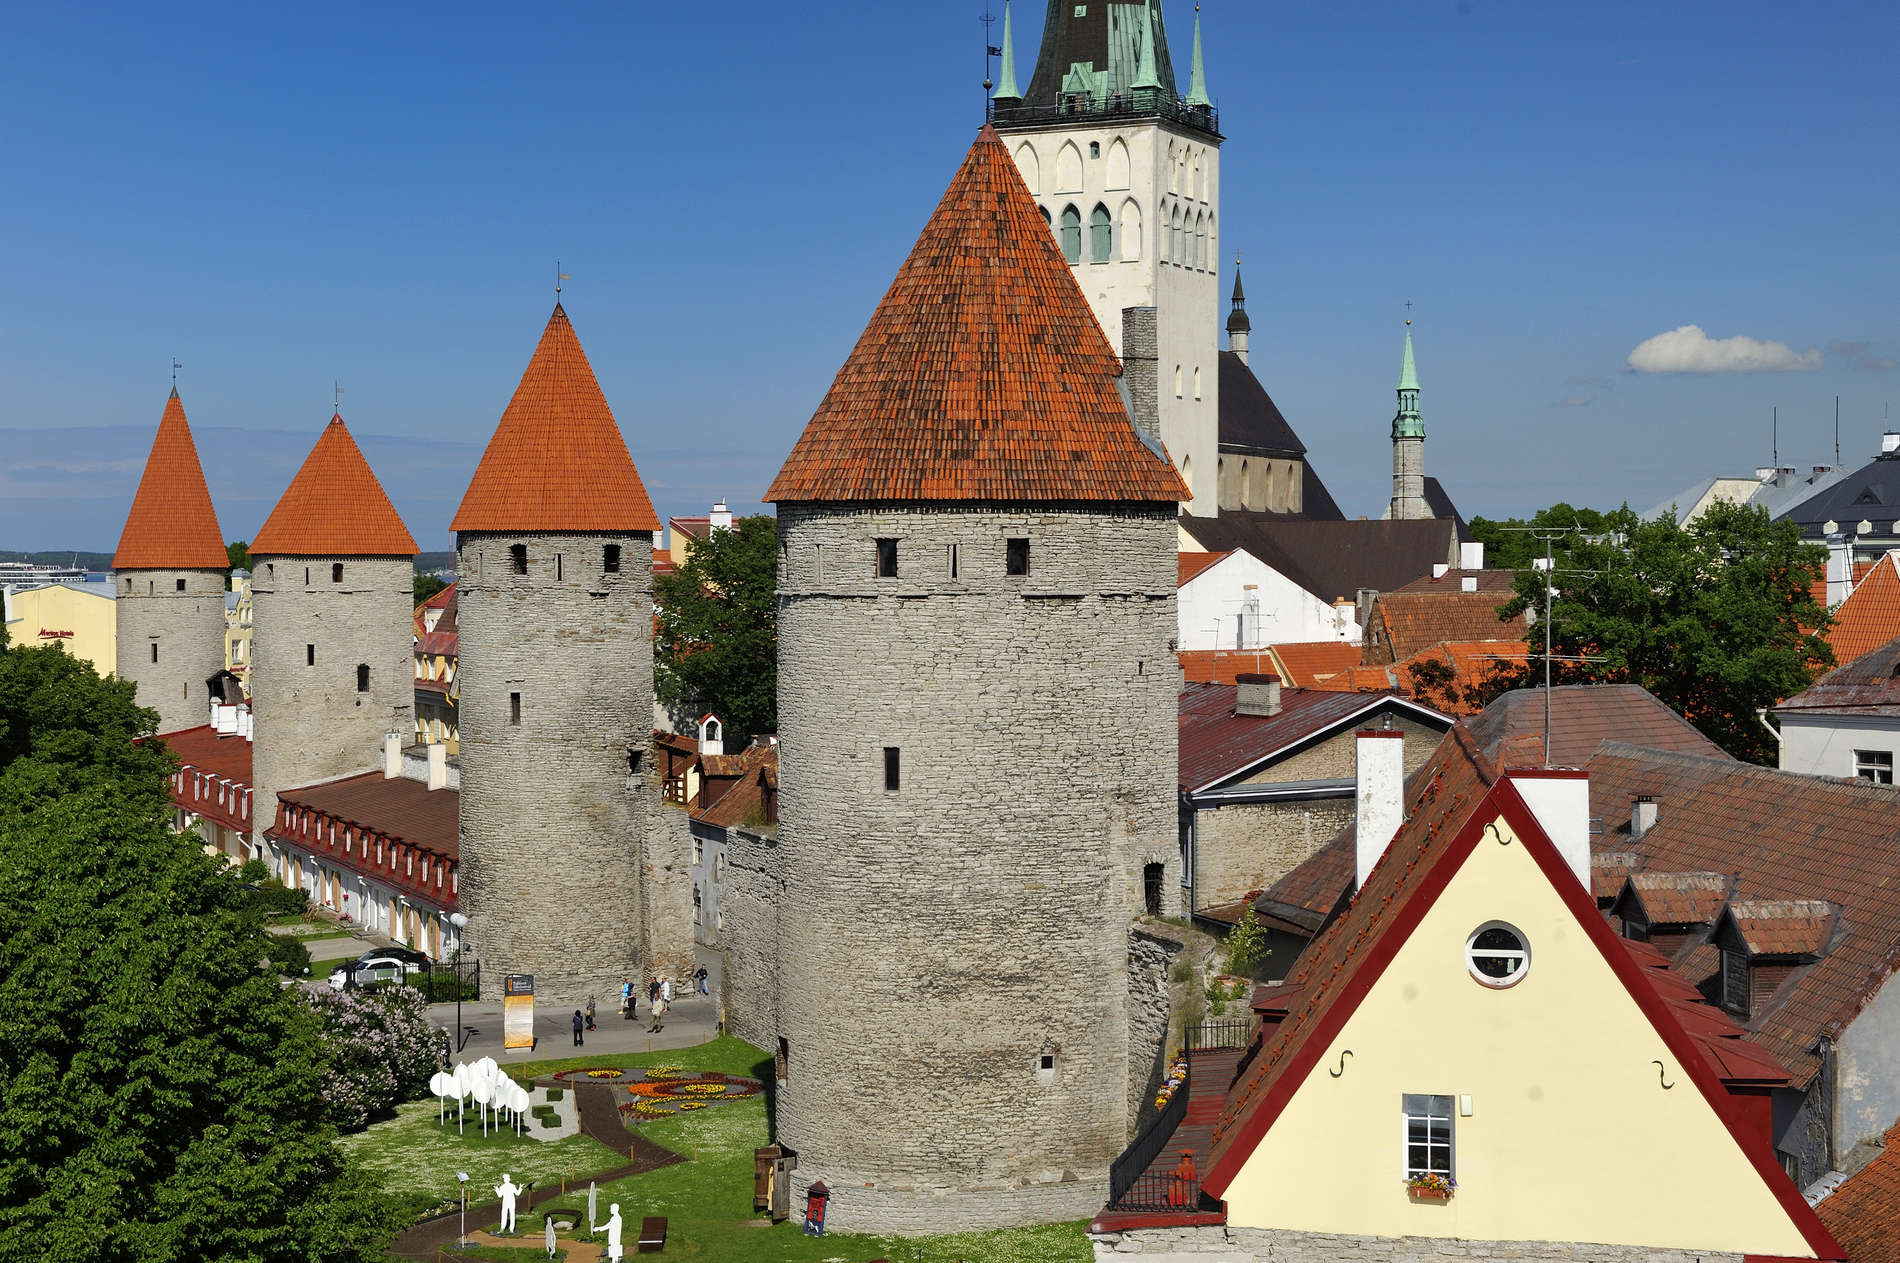 Town Wall and the Towers in Tallinn, Estonia